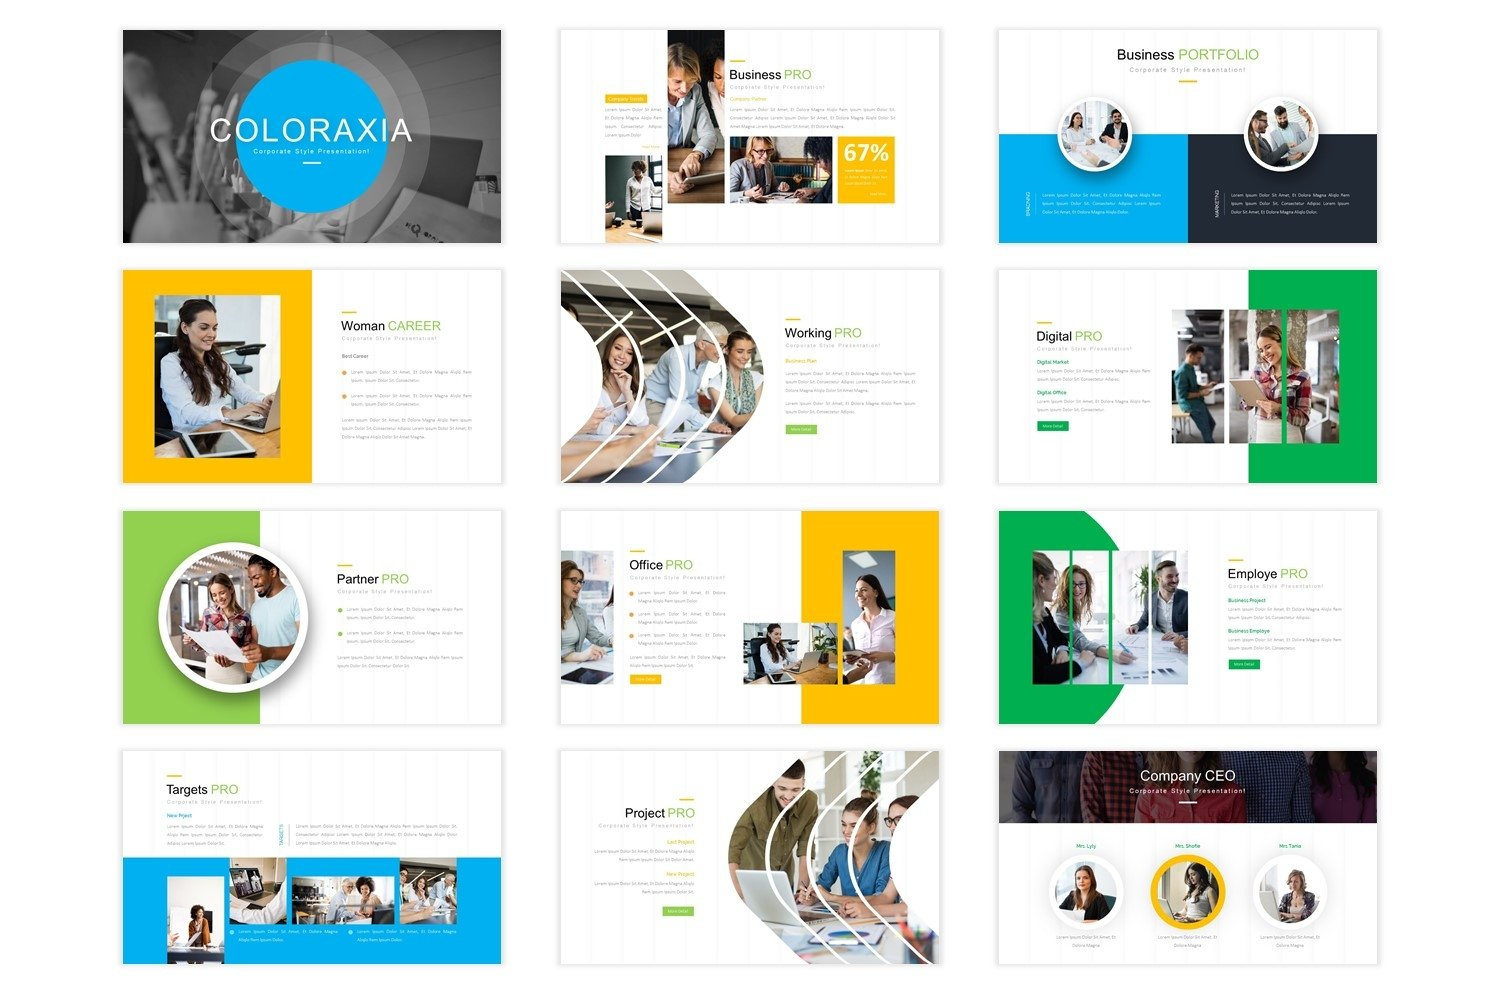 Coloraxia Template - Powerpoint example image 4